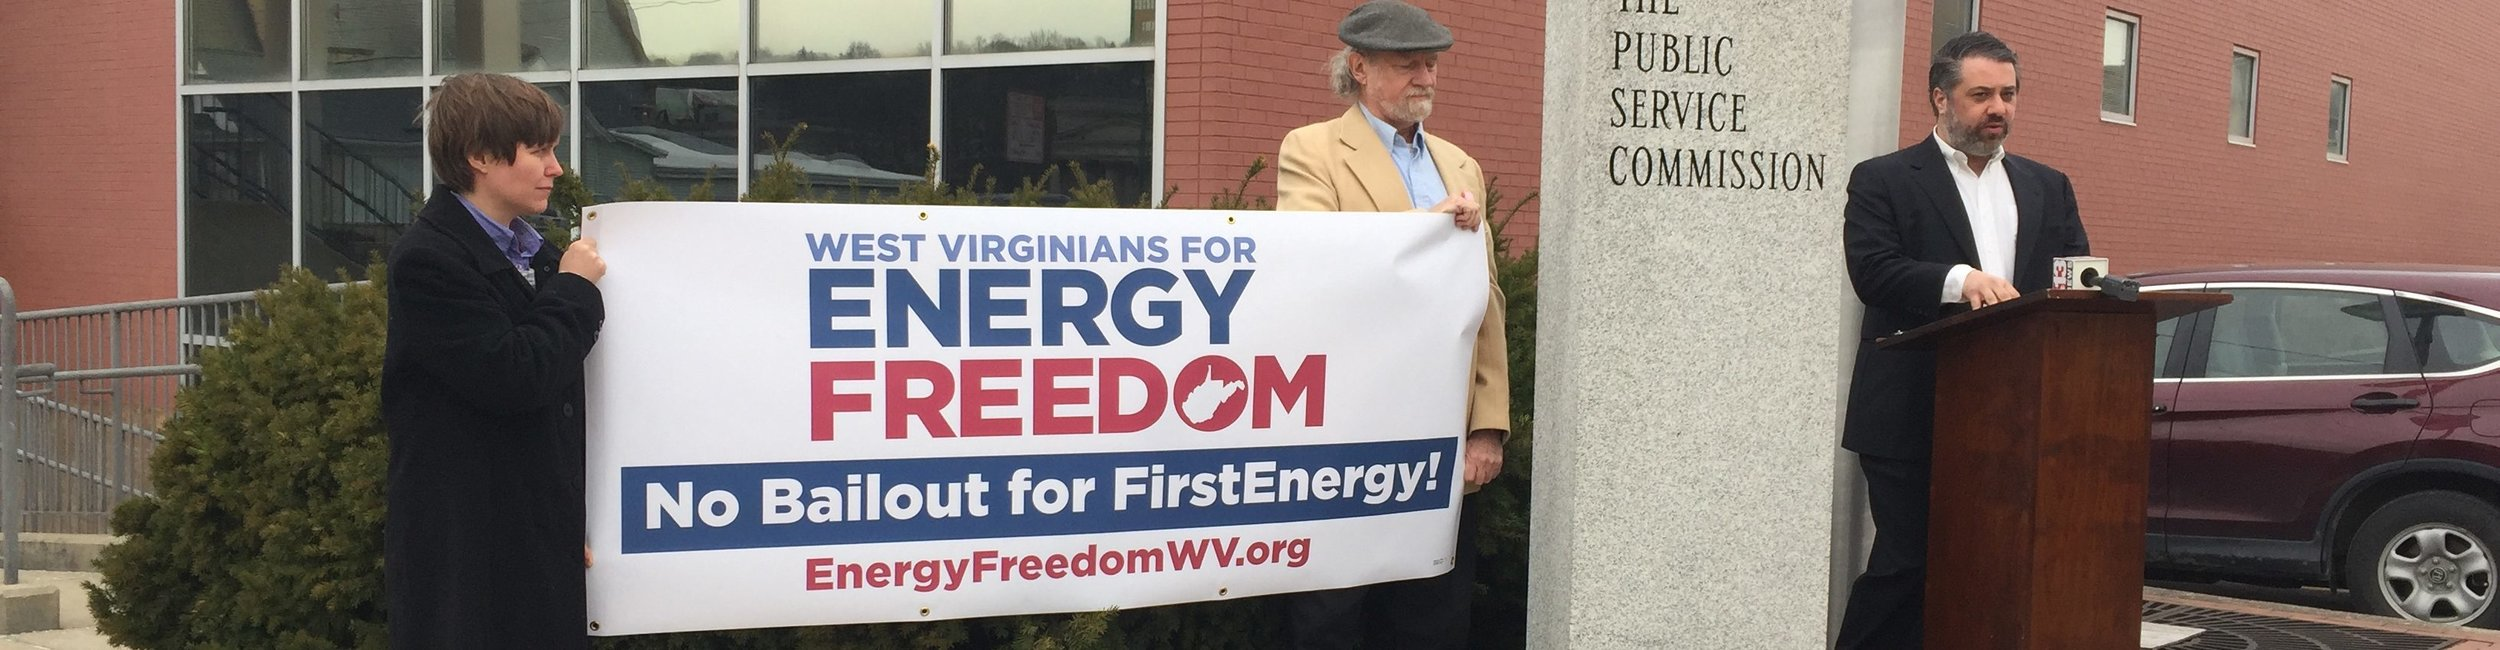 Launched in early 2017, West Virginians For Energy Freedom – a coalition formed by Solar United Neighbors of West Virginia, Energy Efficient West Virginia, and West Virginia Citizen Action Group – came out swinging against FirstEnergy.